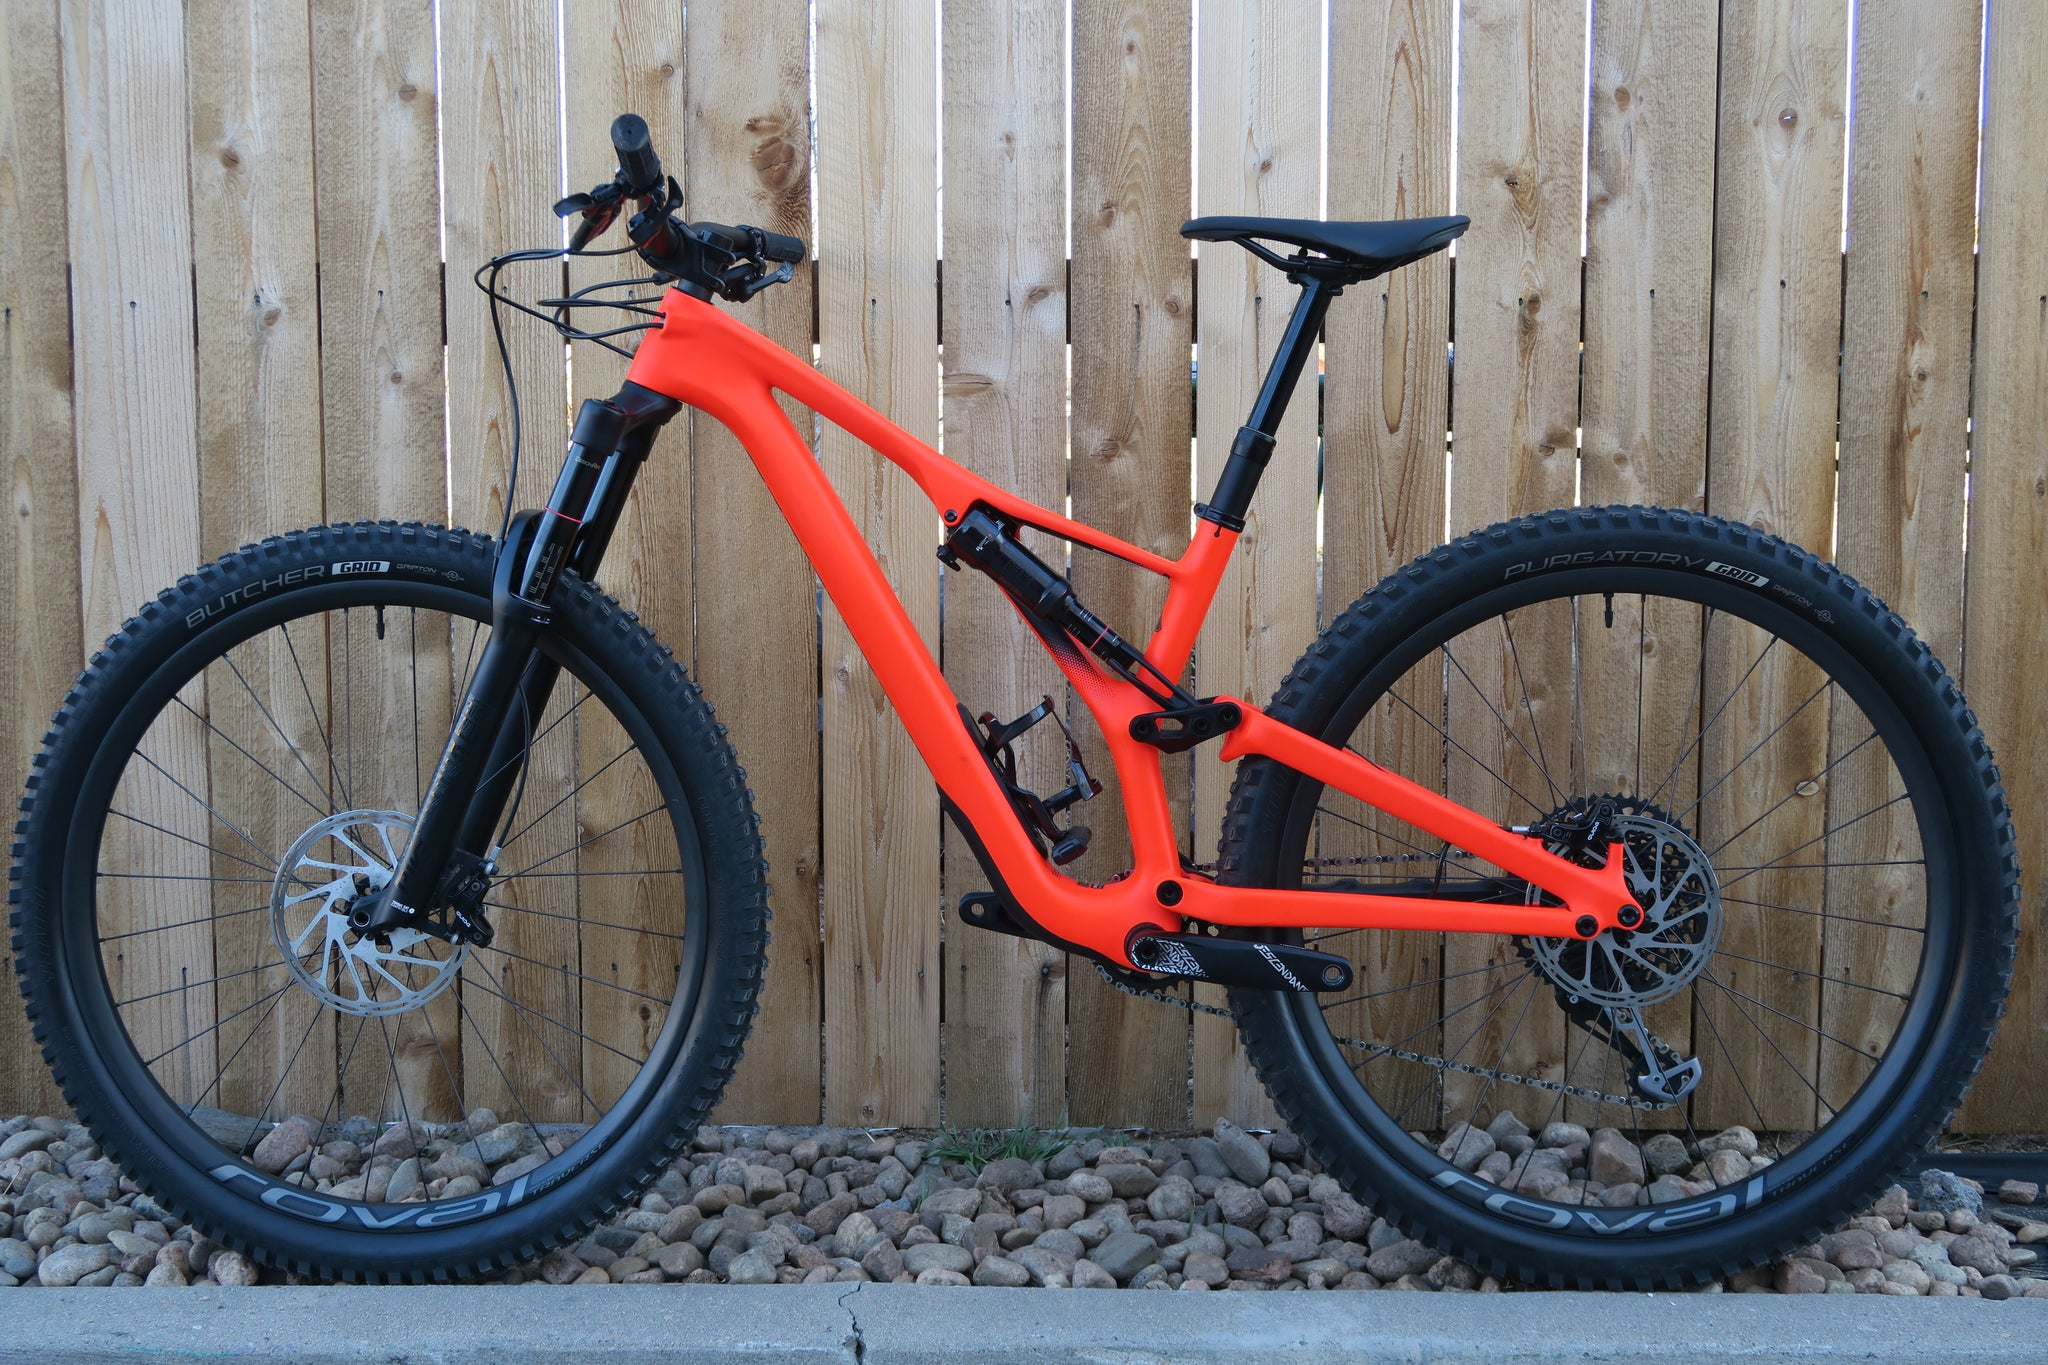 2019 SPECIALIZED STUMPJUMPER EXPERT CARBON 29""